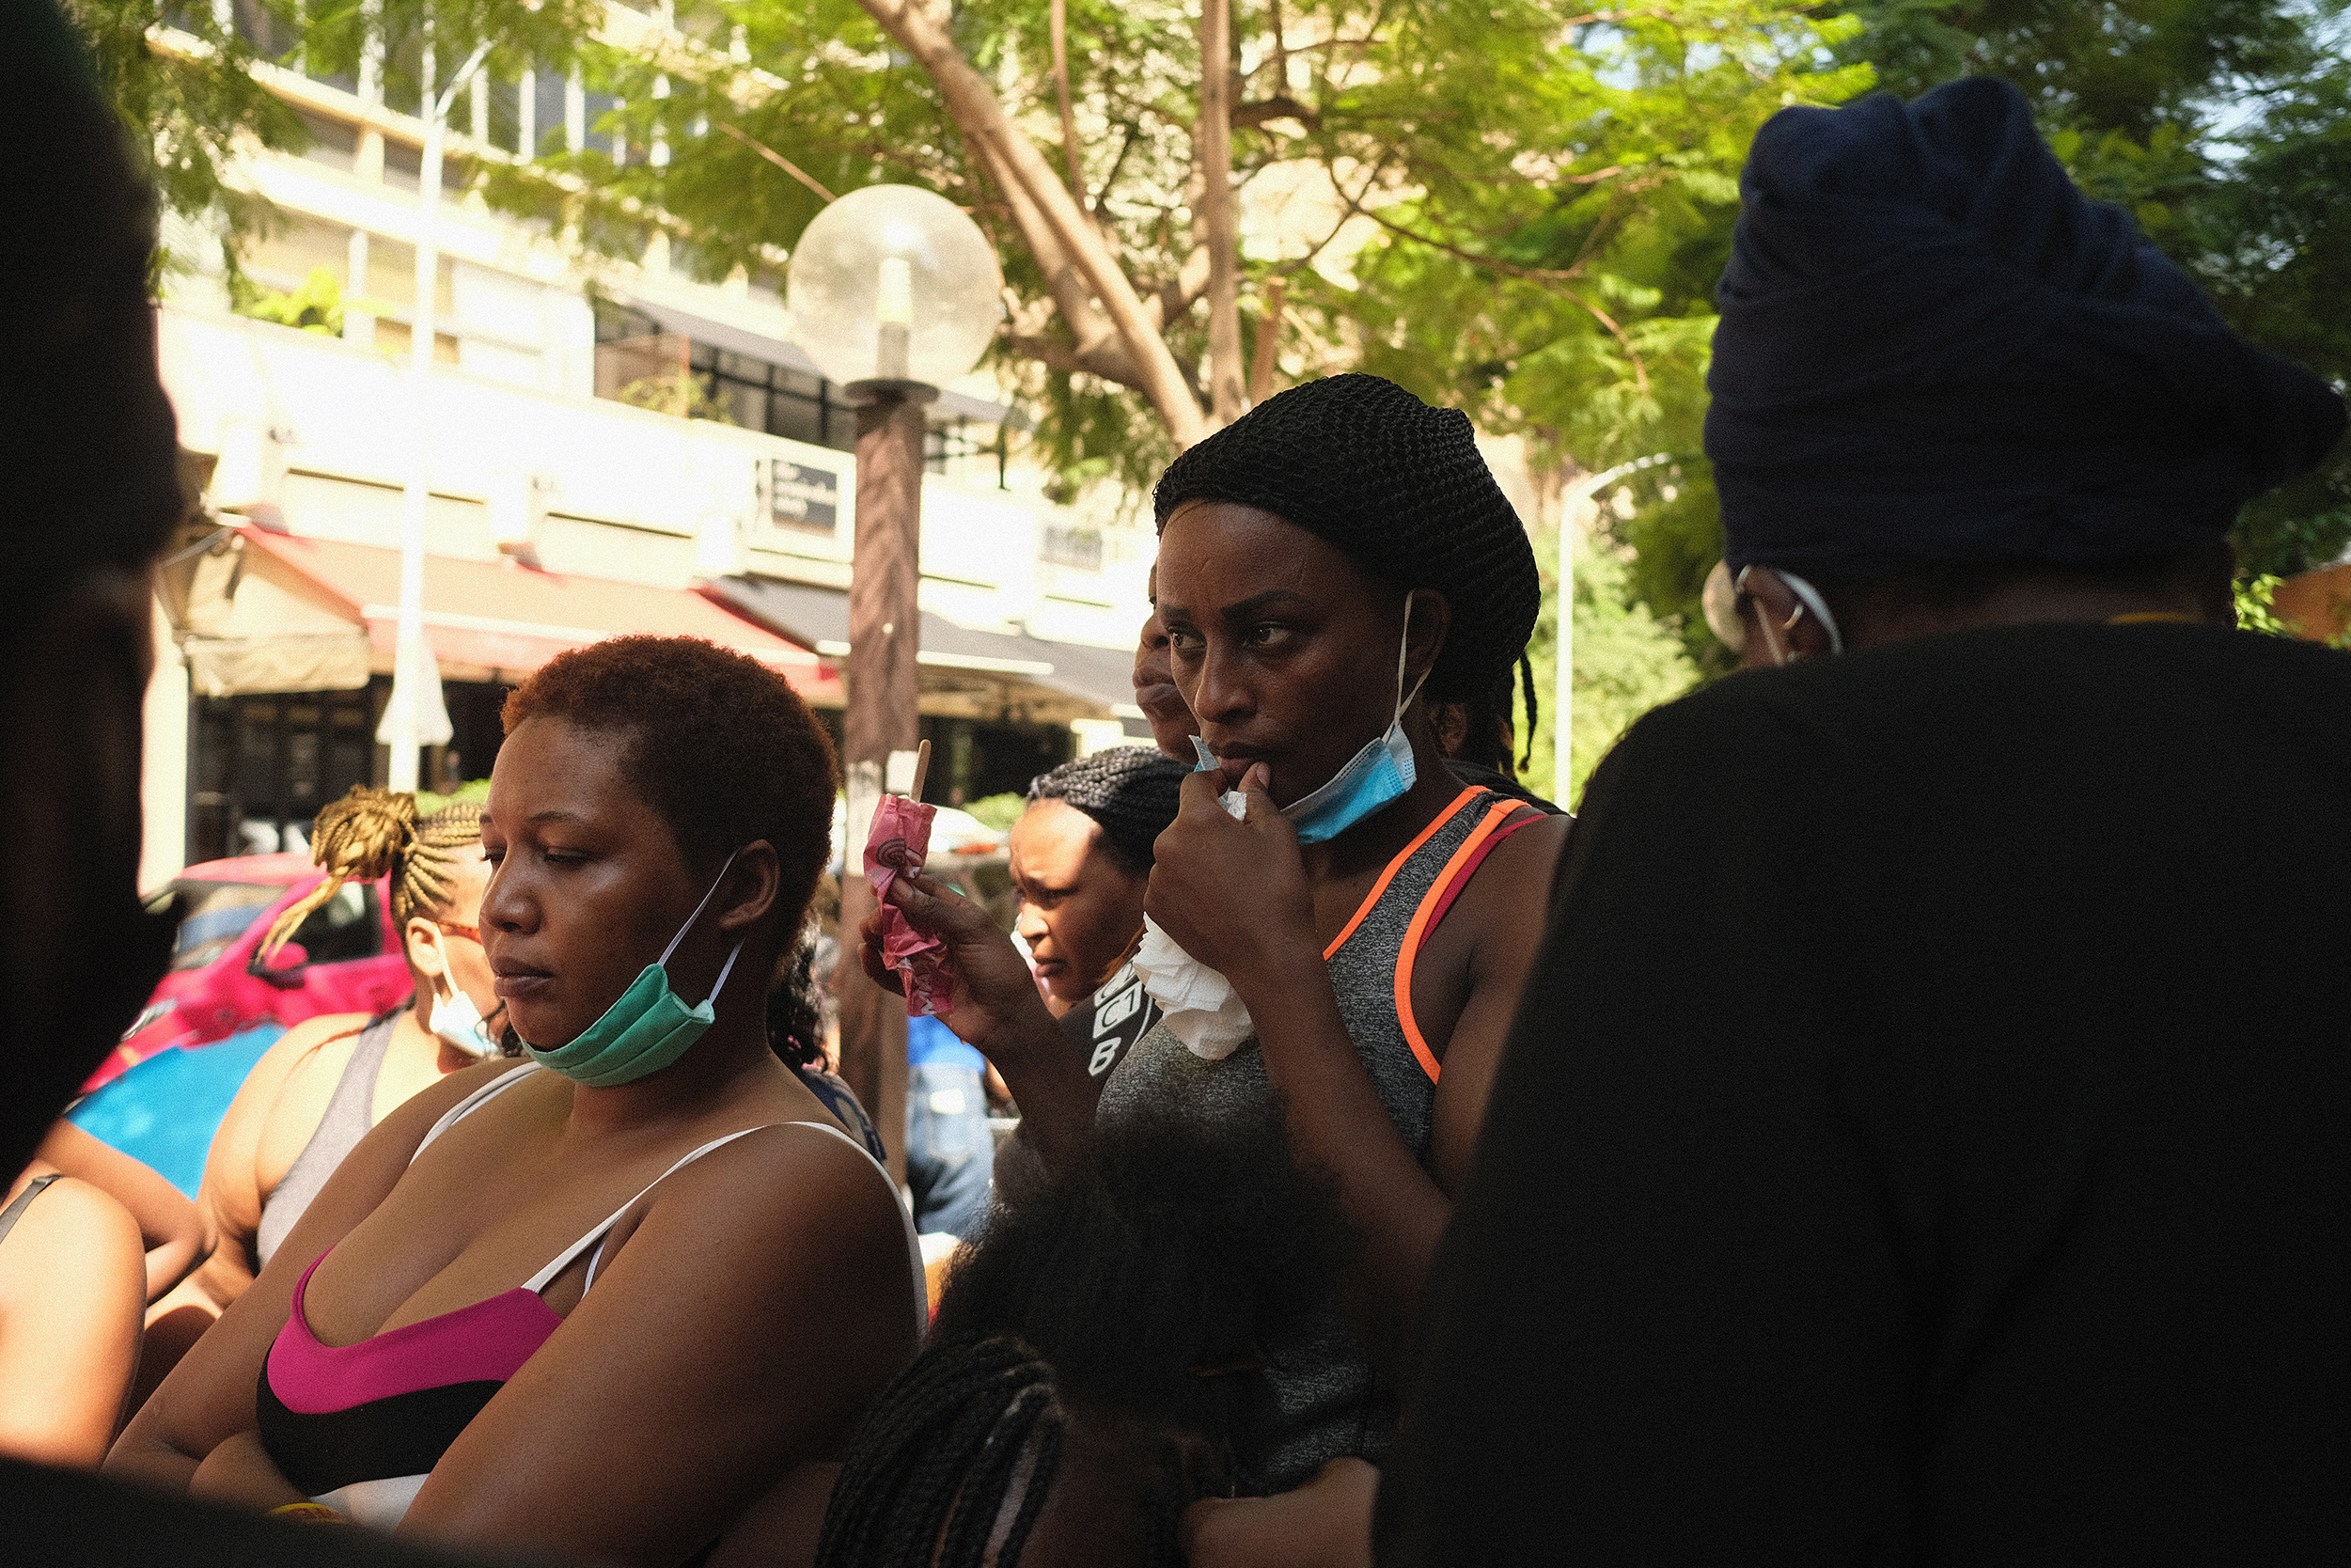 Kenyan women protest outside of their consulate in Beirut, demanding repatriation. (Photo: Andre Mahfouz)